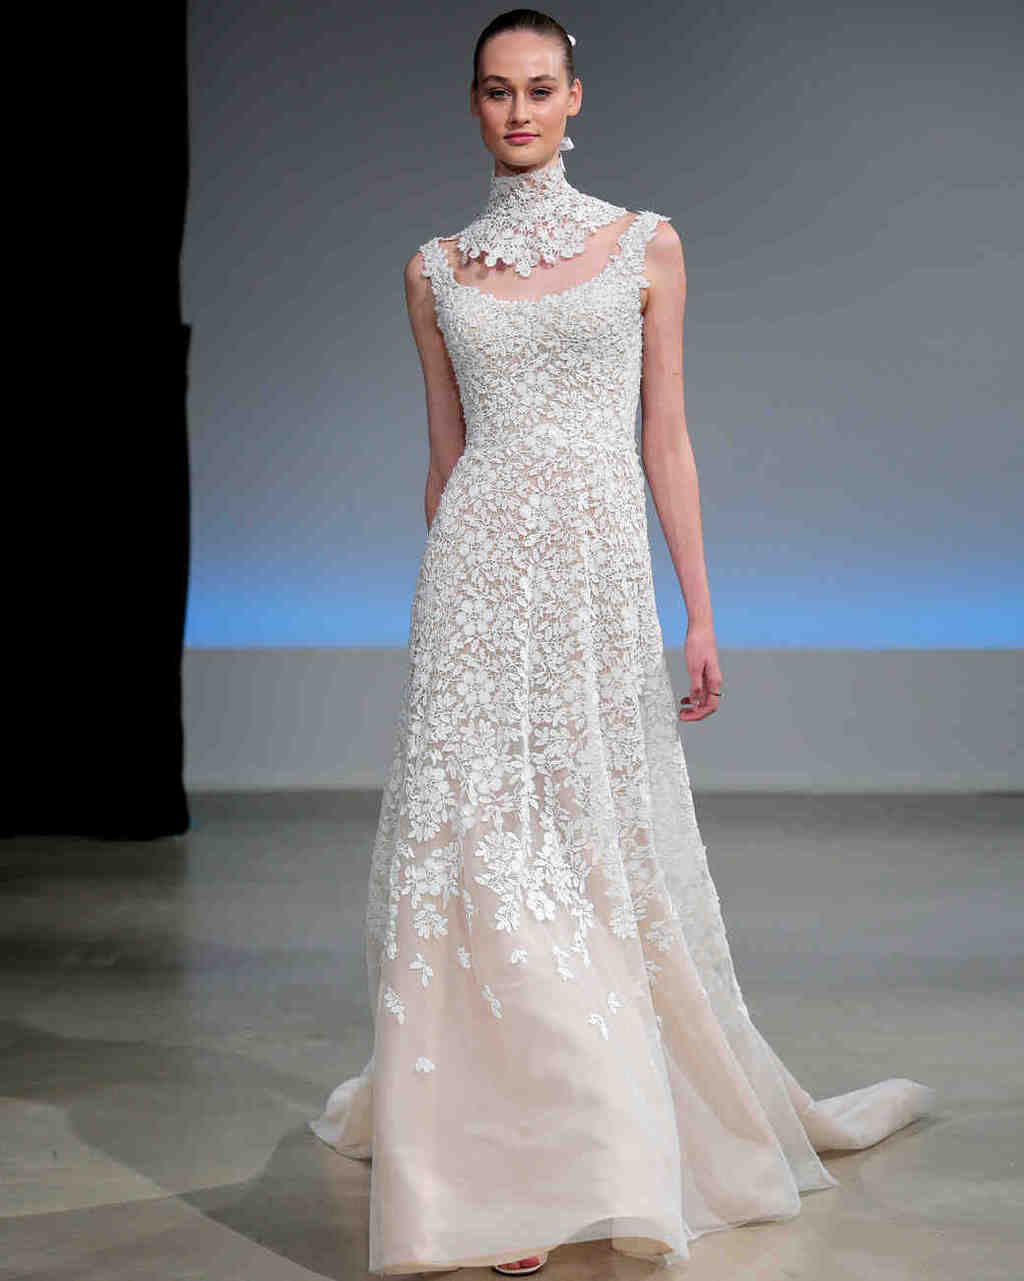 vestido-de-noiva-rose-quartz-isabelle-armstrong-wedding-dress-fall2017-6203351-016_vert